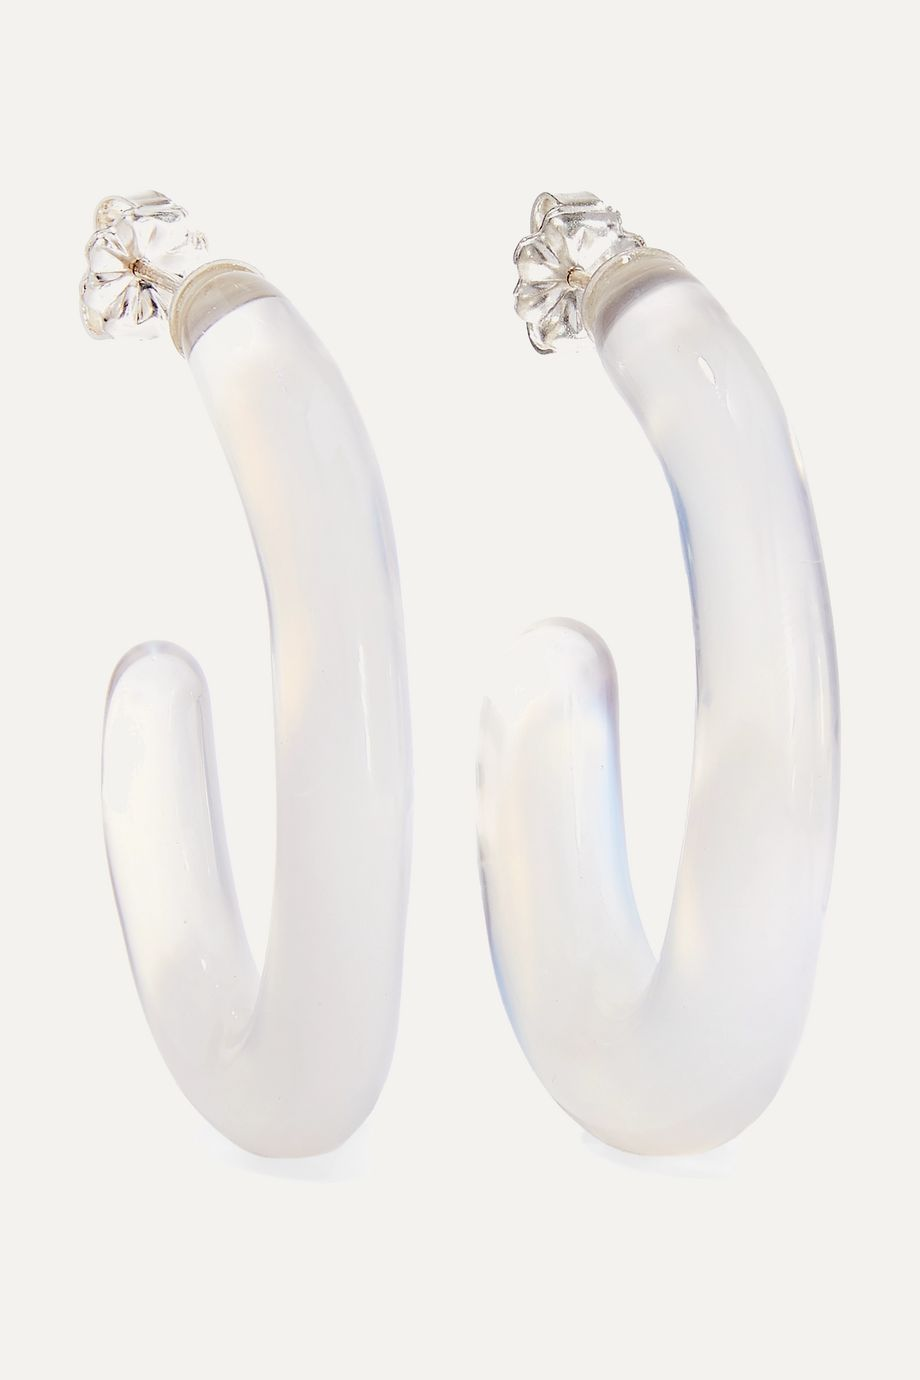 Leigh Miller + NET SUSTAIN Opaline glass hoop earrings